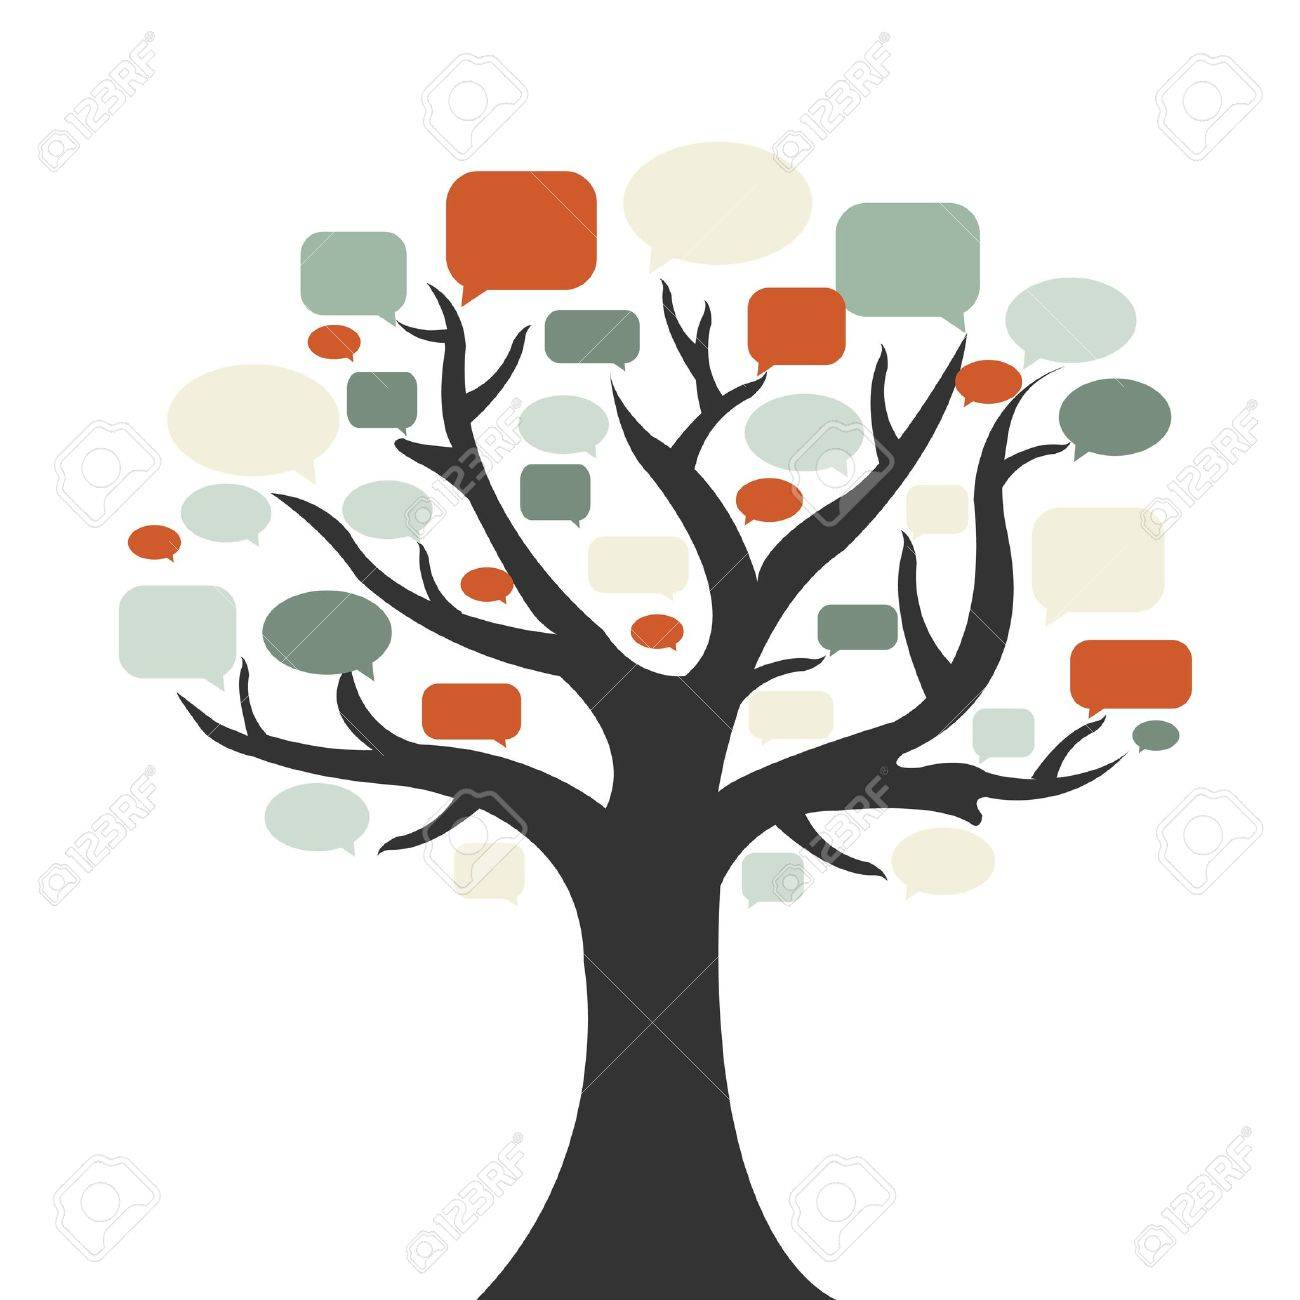 Tree With Speech Bubble, Isolated On White Background, Vector Illustration Stock Vector - 9283636